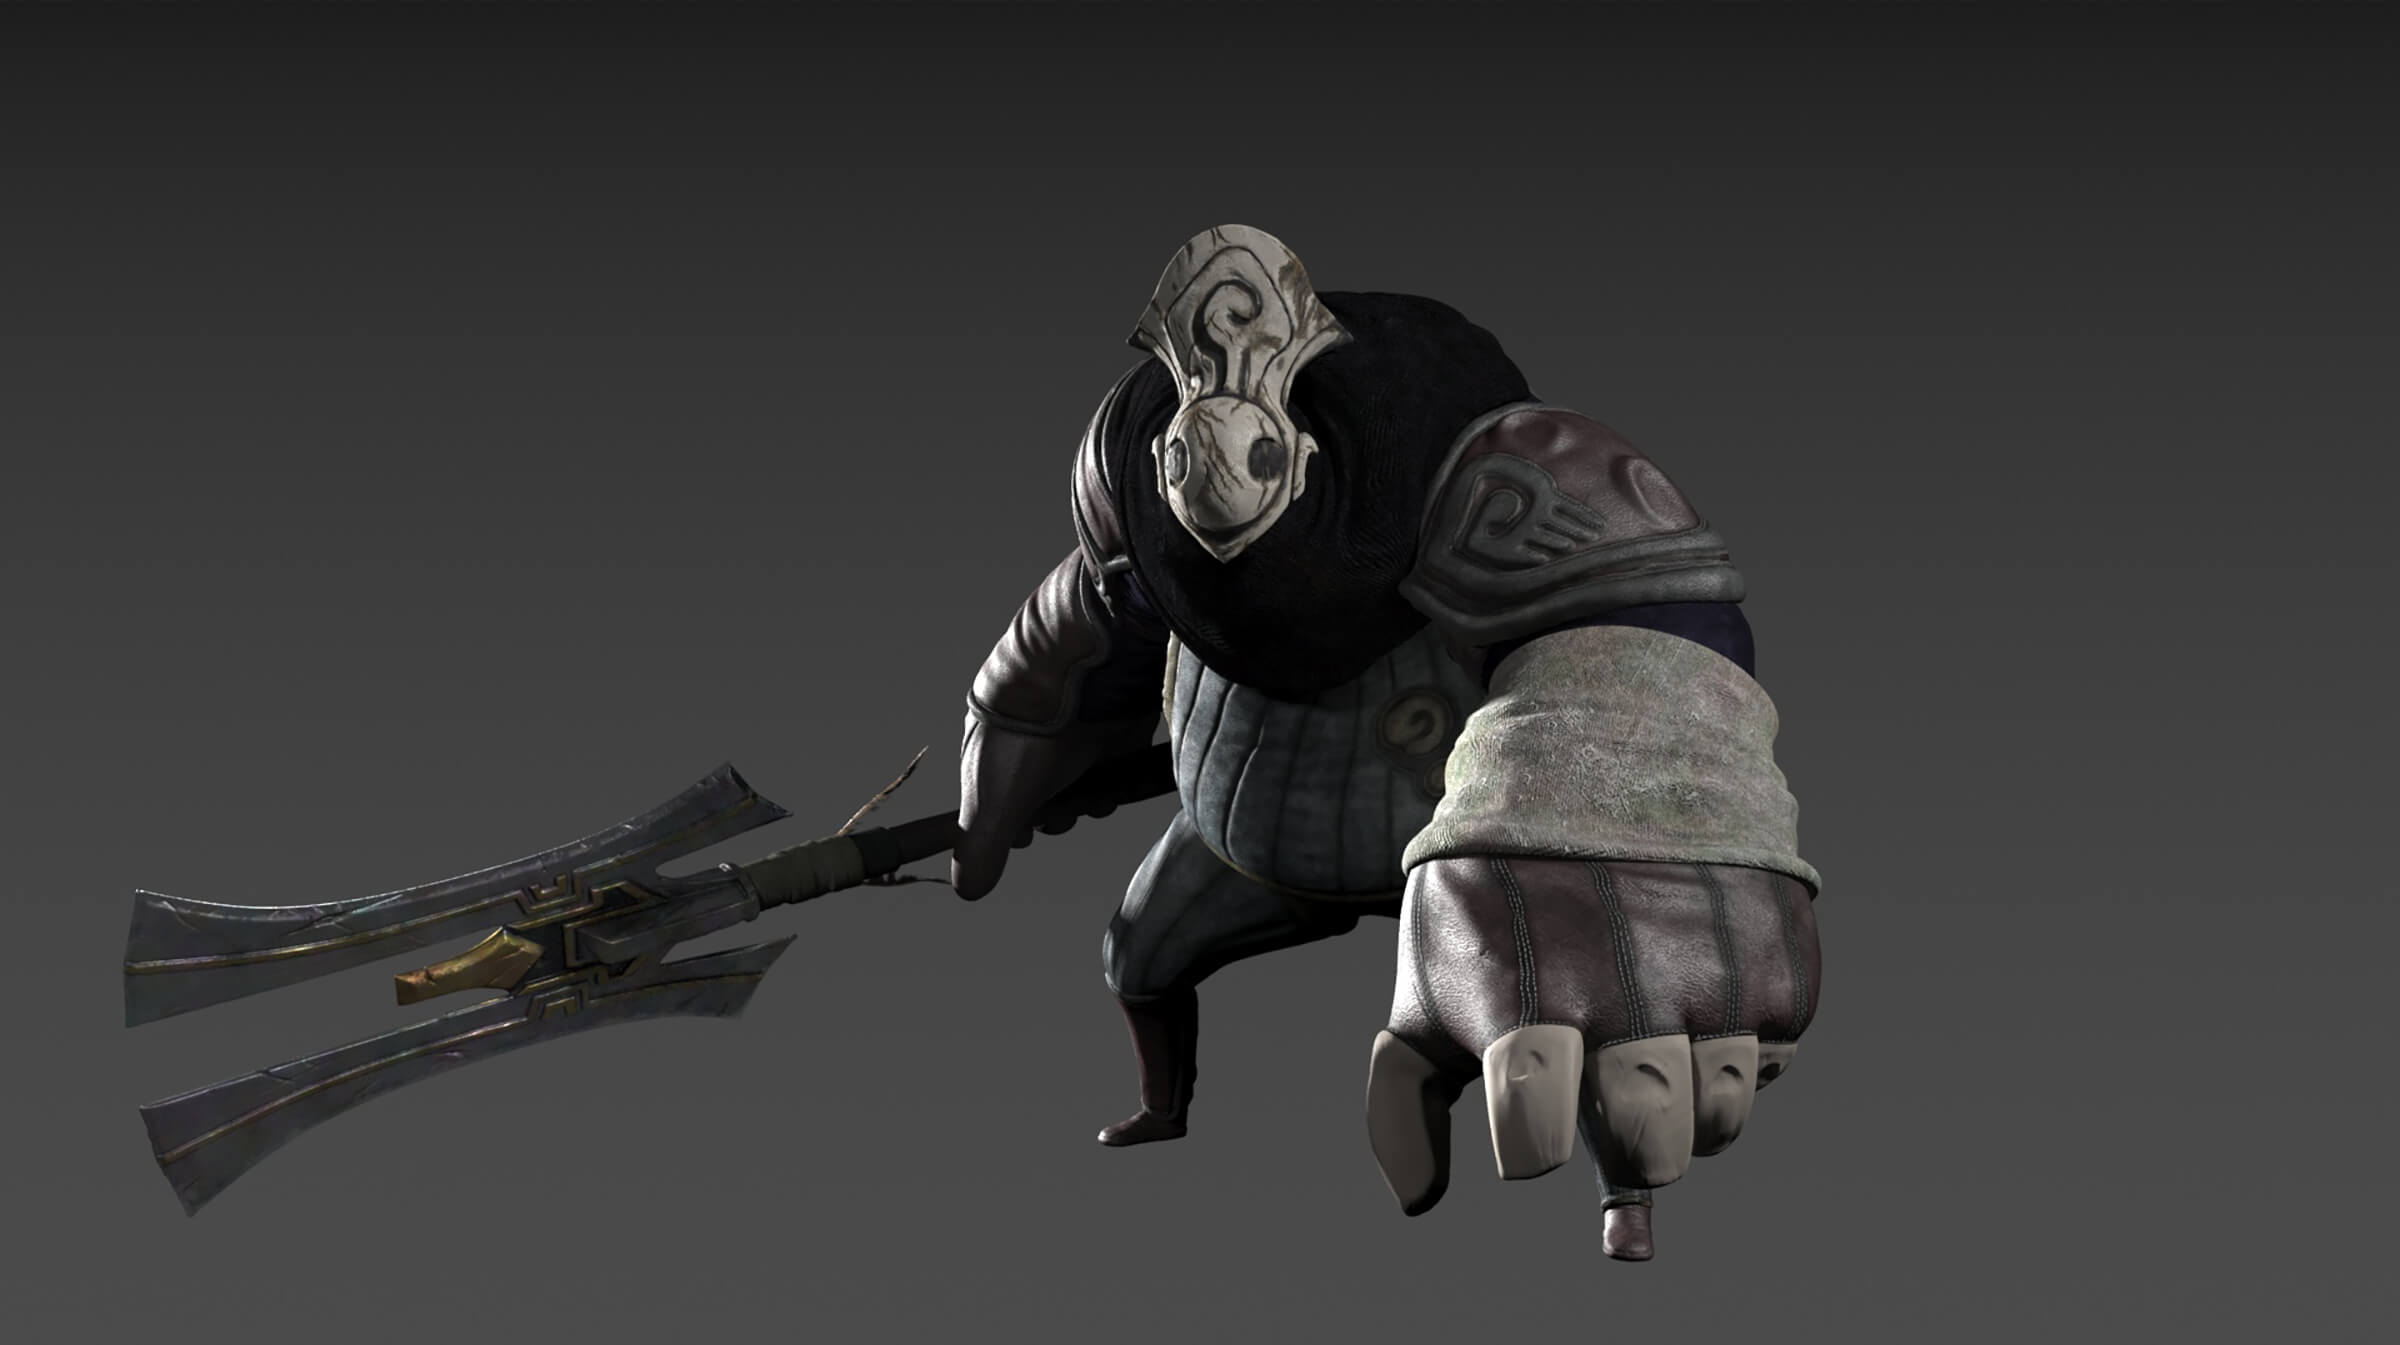 A stocky CG character in cloth battle gear and weathered gray mask holds a large, two-pronged melee weapon at its side.